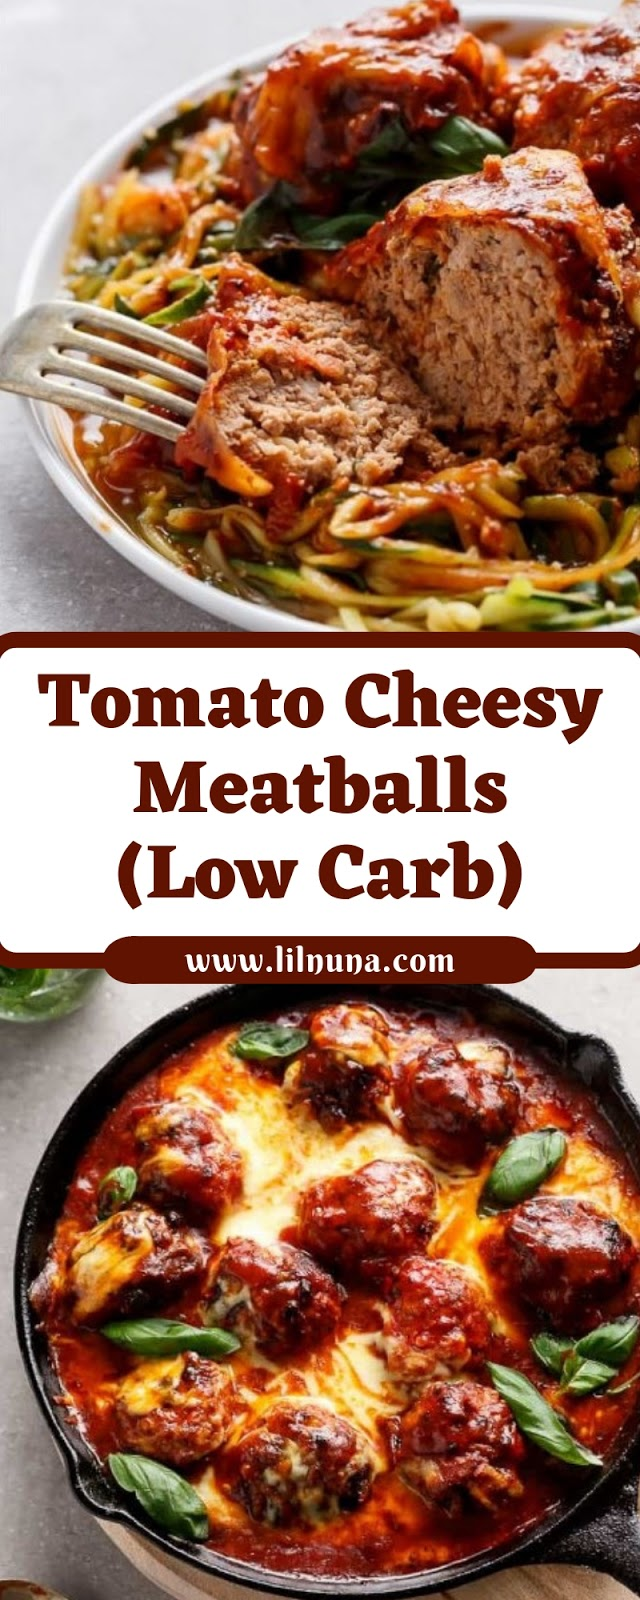 Tomato Cheesy Meatballs (Low Carb)